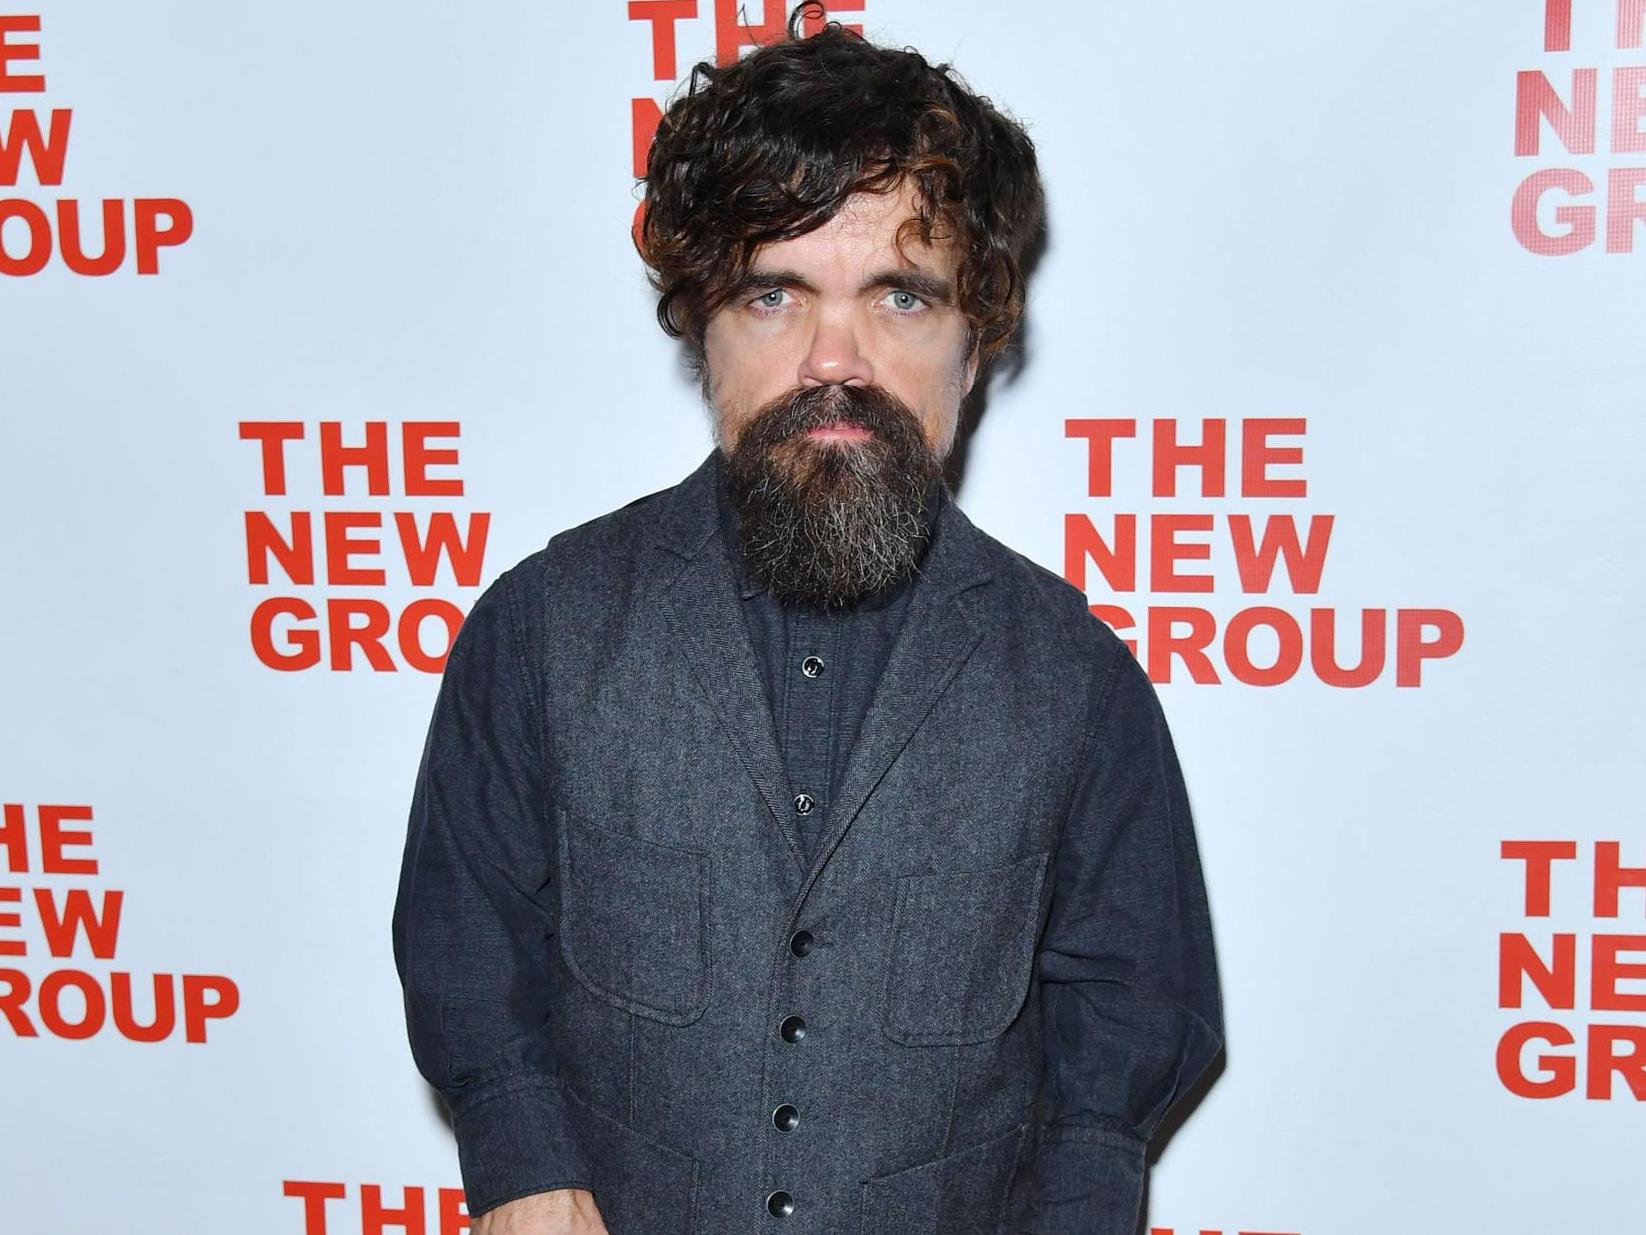 Game of Thrones' Peter Dinklage says being 'politically correct' about dwarfism can be 'damaging'